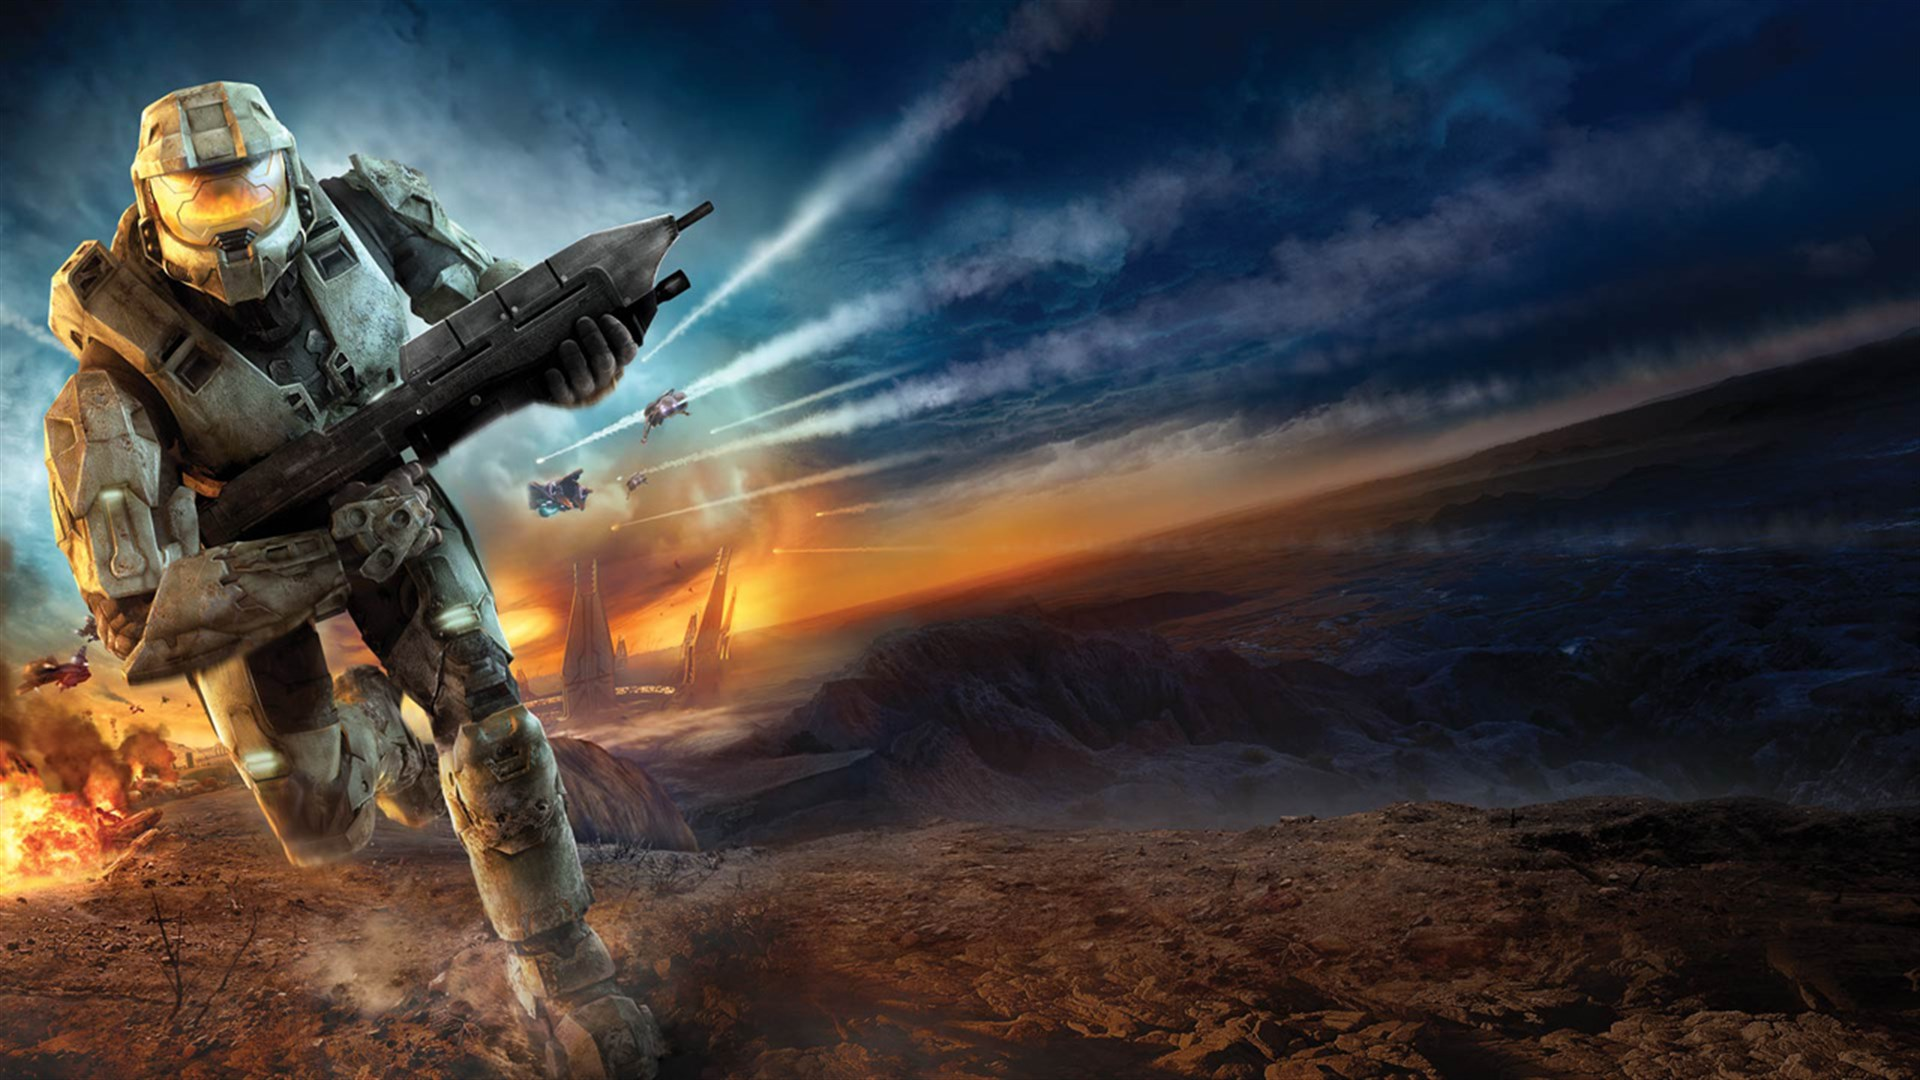 Buy Halo 3 Mythic II Map Pack - Microsoft Store